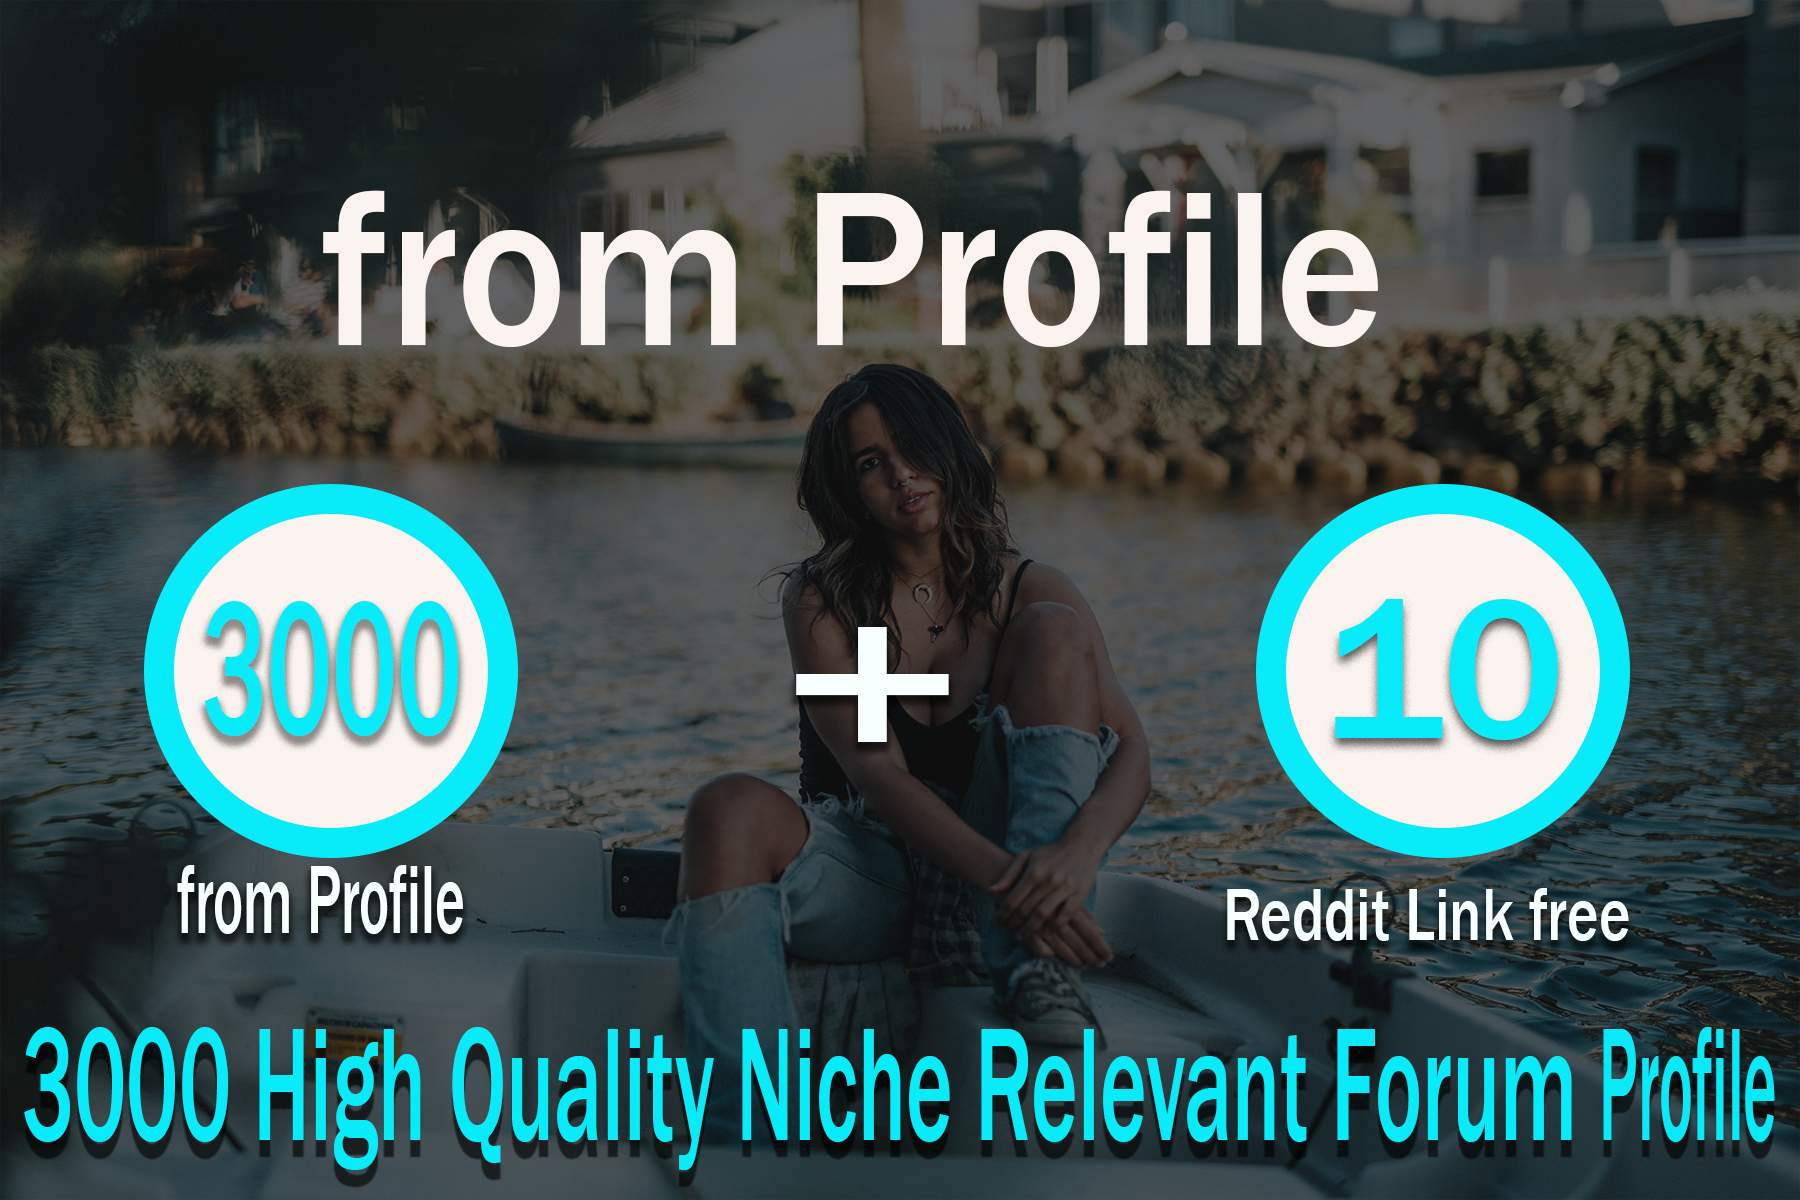 3000+ HQ Forum Profile 10 reddit links free Backlinks High PA DA Sites